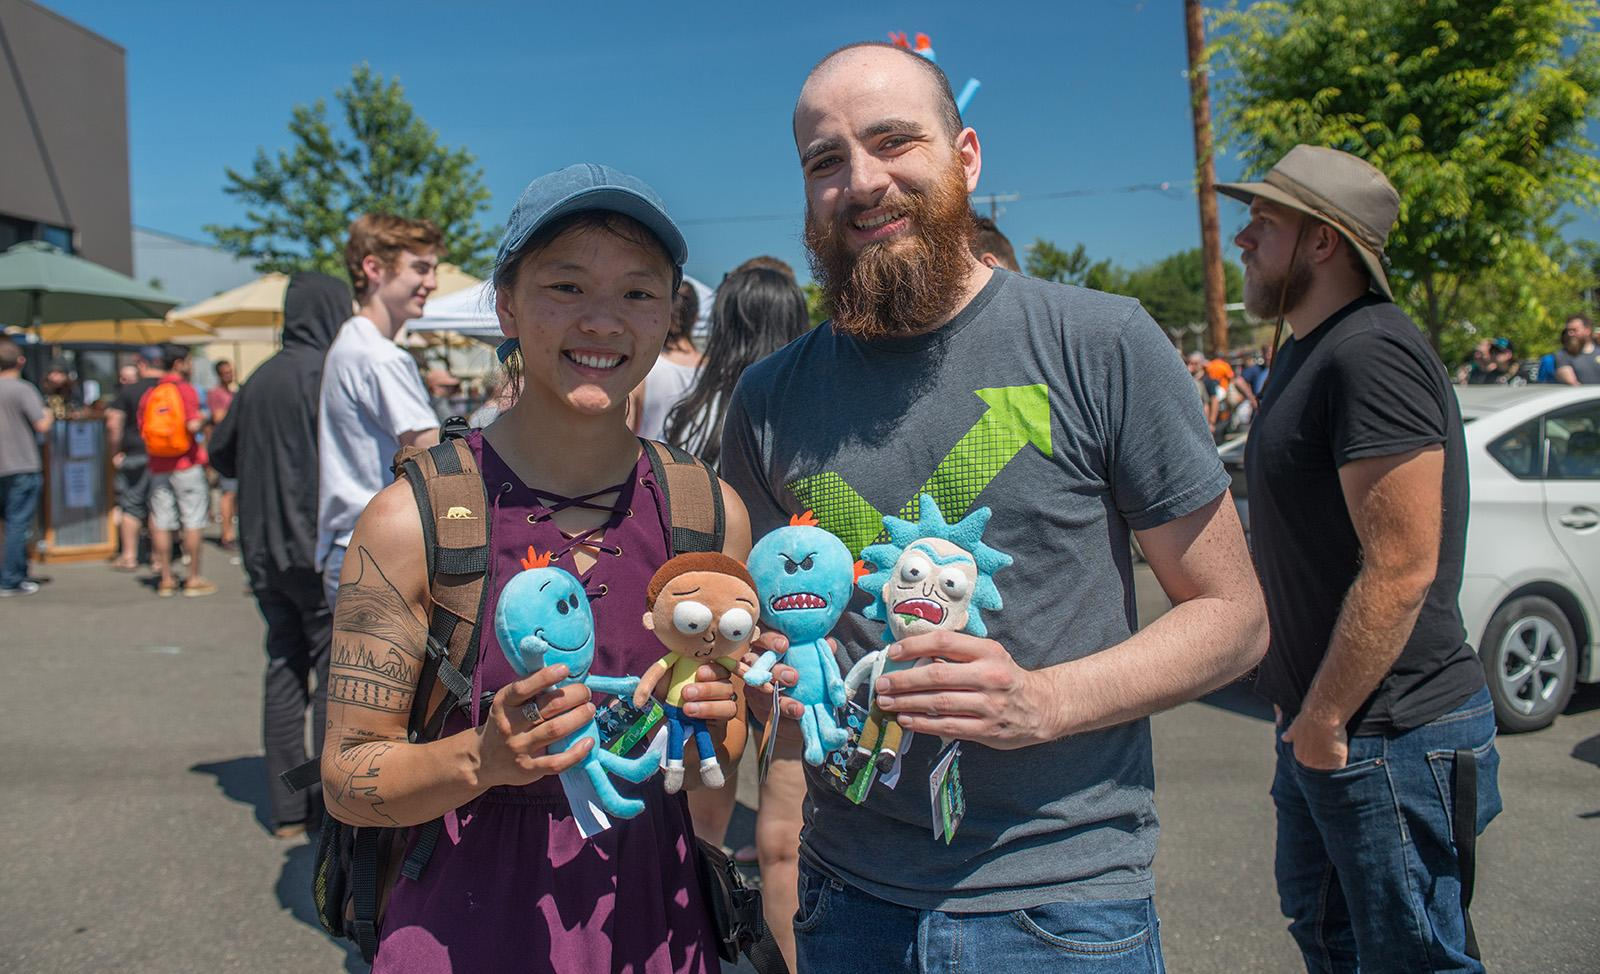 Fans of the TV show Rick and Morty ventured out to Mississippi Ave on Thursday to check out the Rickmobile – a touring truck filled to the brim with limited merchandise. Over 3,000 were expected to come out to Portland's Ecliptic Brewing to check out the van as part of a nationwide promotional tour. (KATU photo taken June 29, 2017 by Tristan Fortsch)